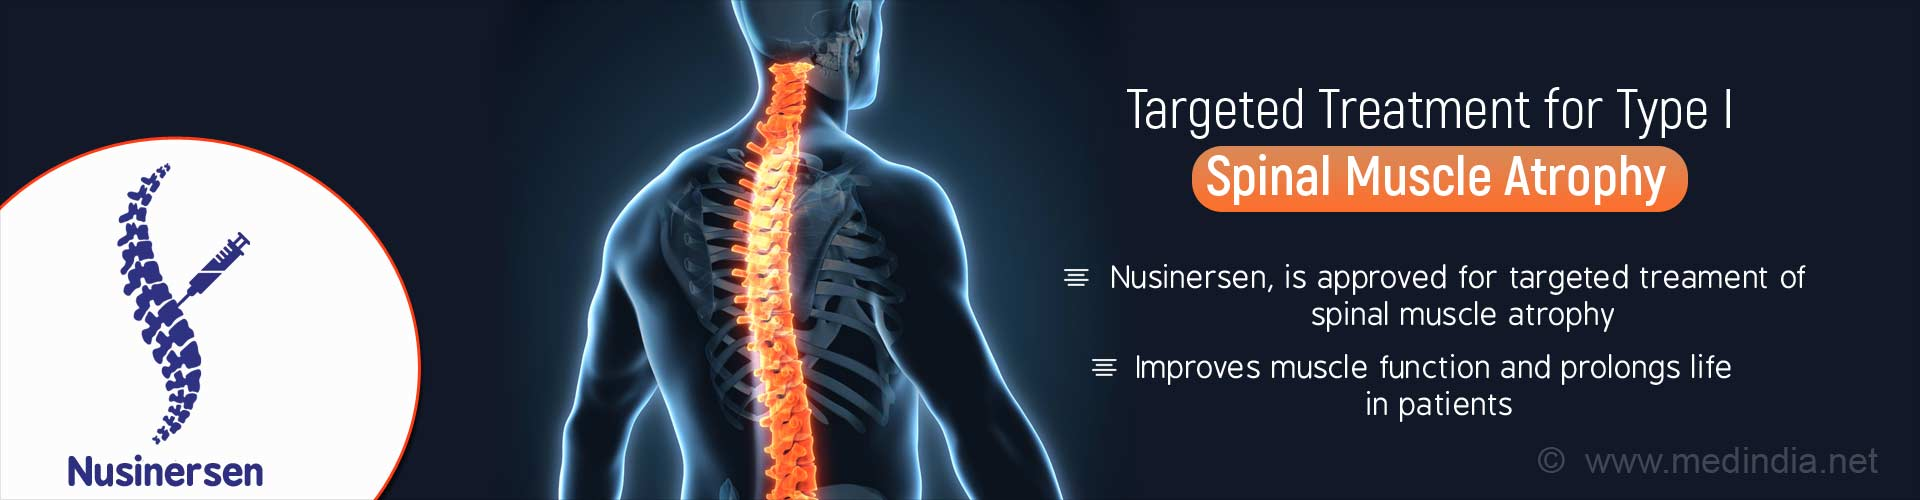 Targeted treatment for type 1 spinal muscle atrophy